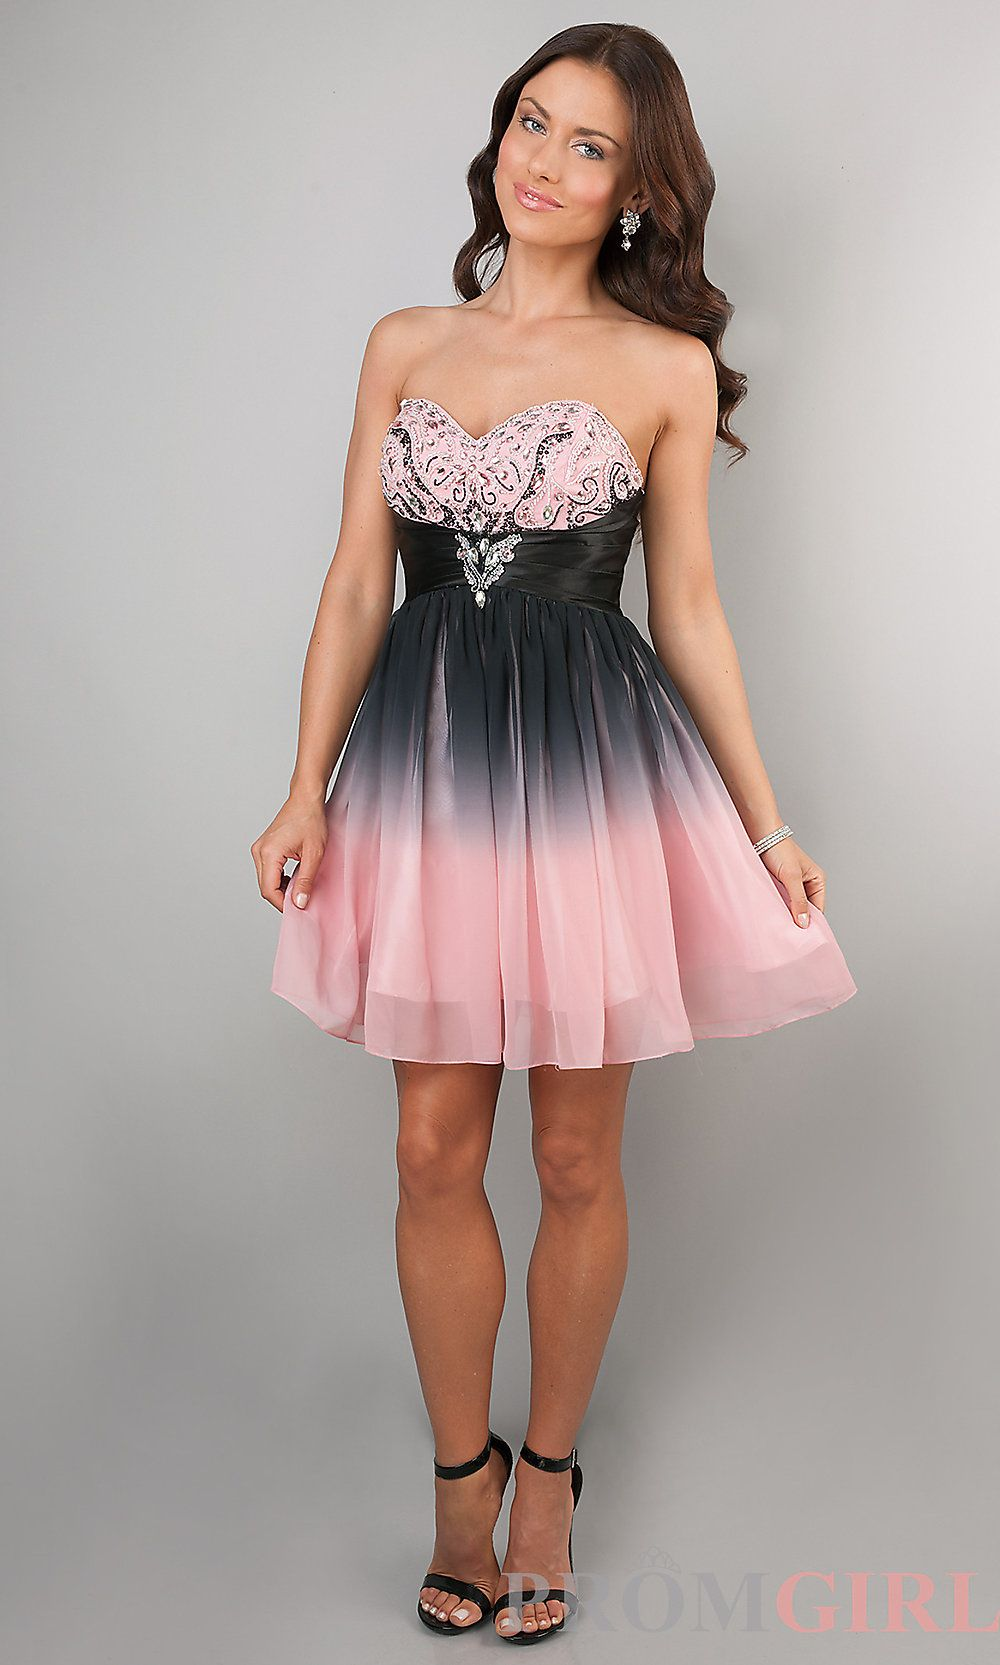 8492ca7a23c Strapless Junior Prom Dress